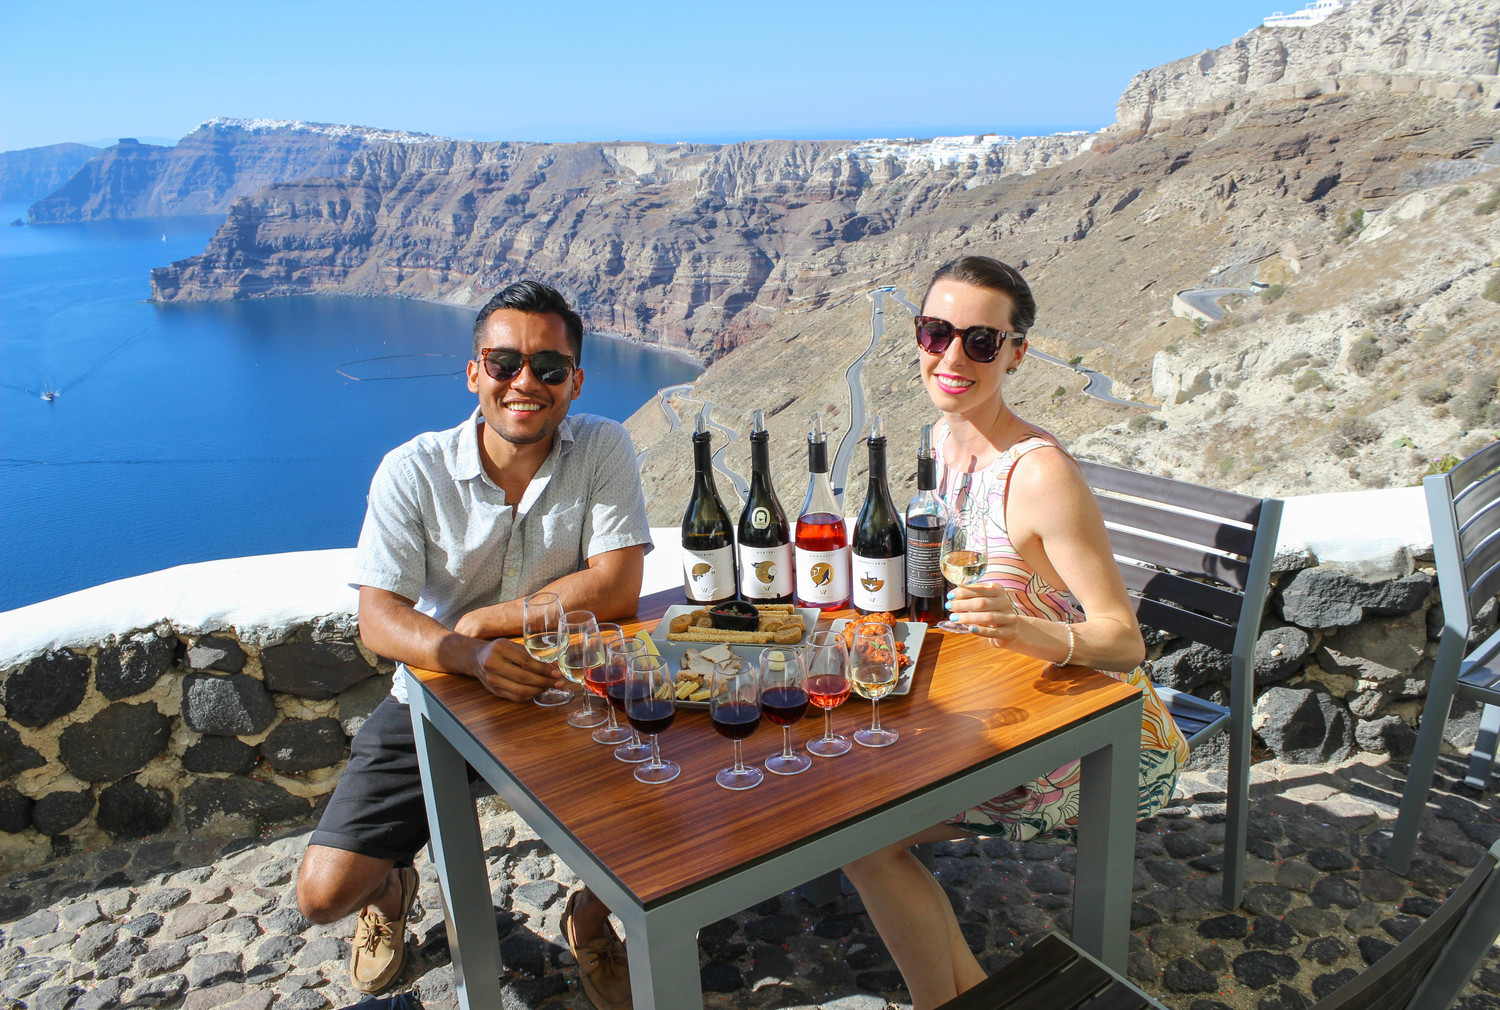 THE BEST WINE TOUR WE'VE EVER BEEN ON